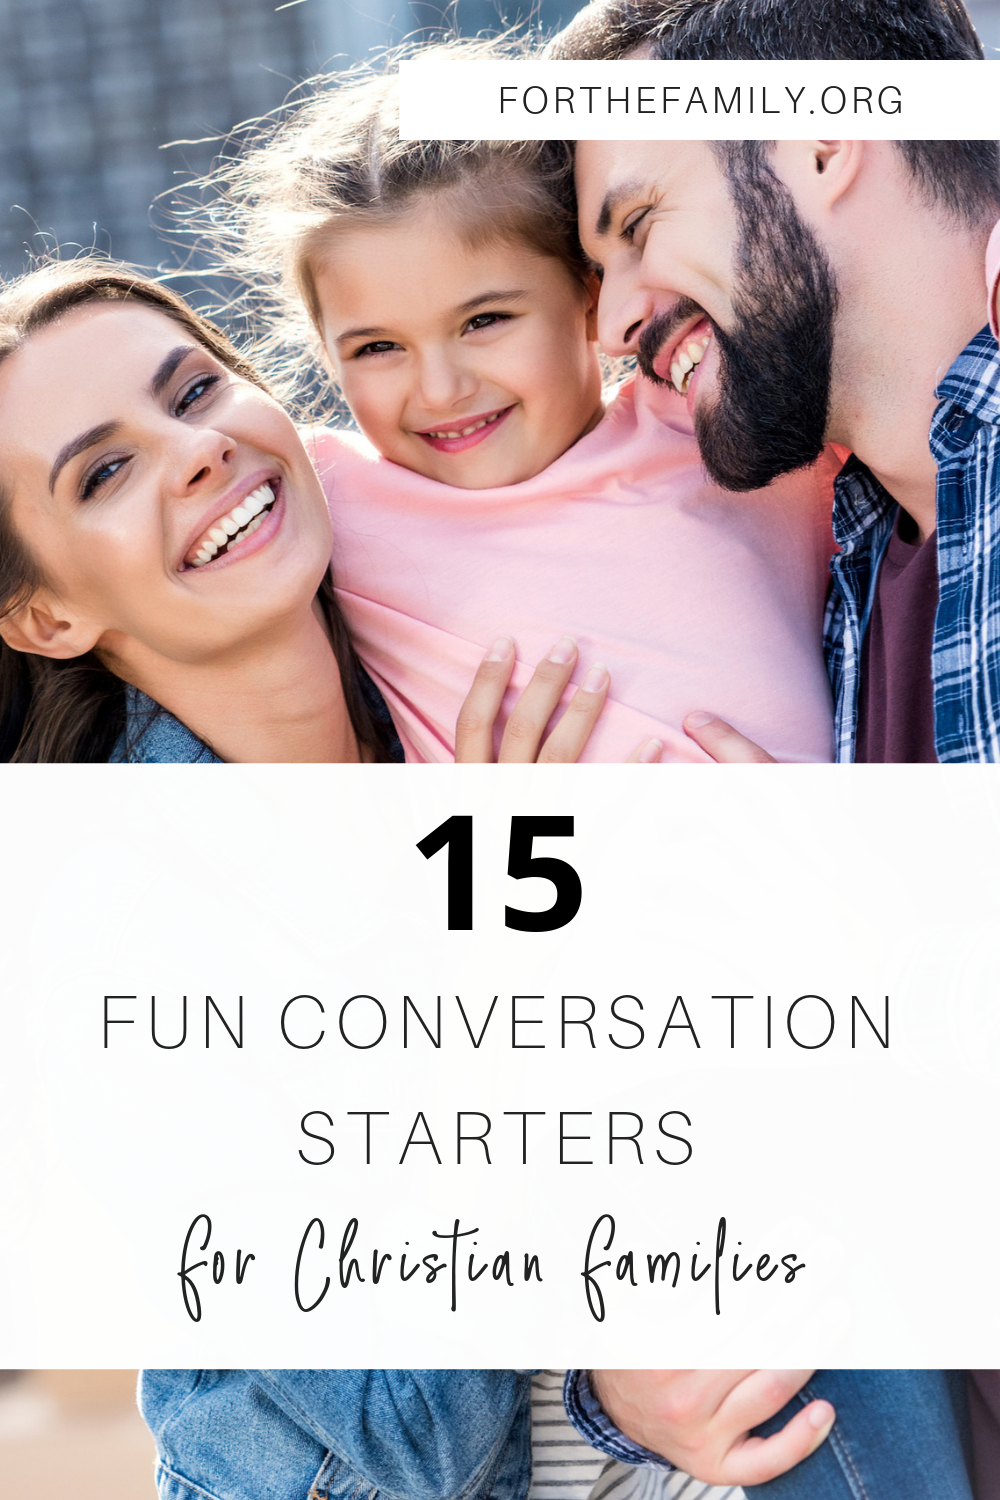 Does your family share life around the dinner table? Most of us dream about chatting and laughing with our families, but it can be hard to know how to break the ice! Try these conversation starters sure to get the convo going and bring you closer together!